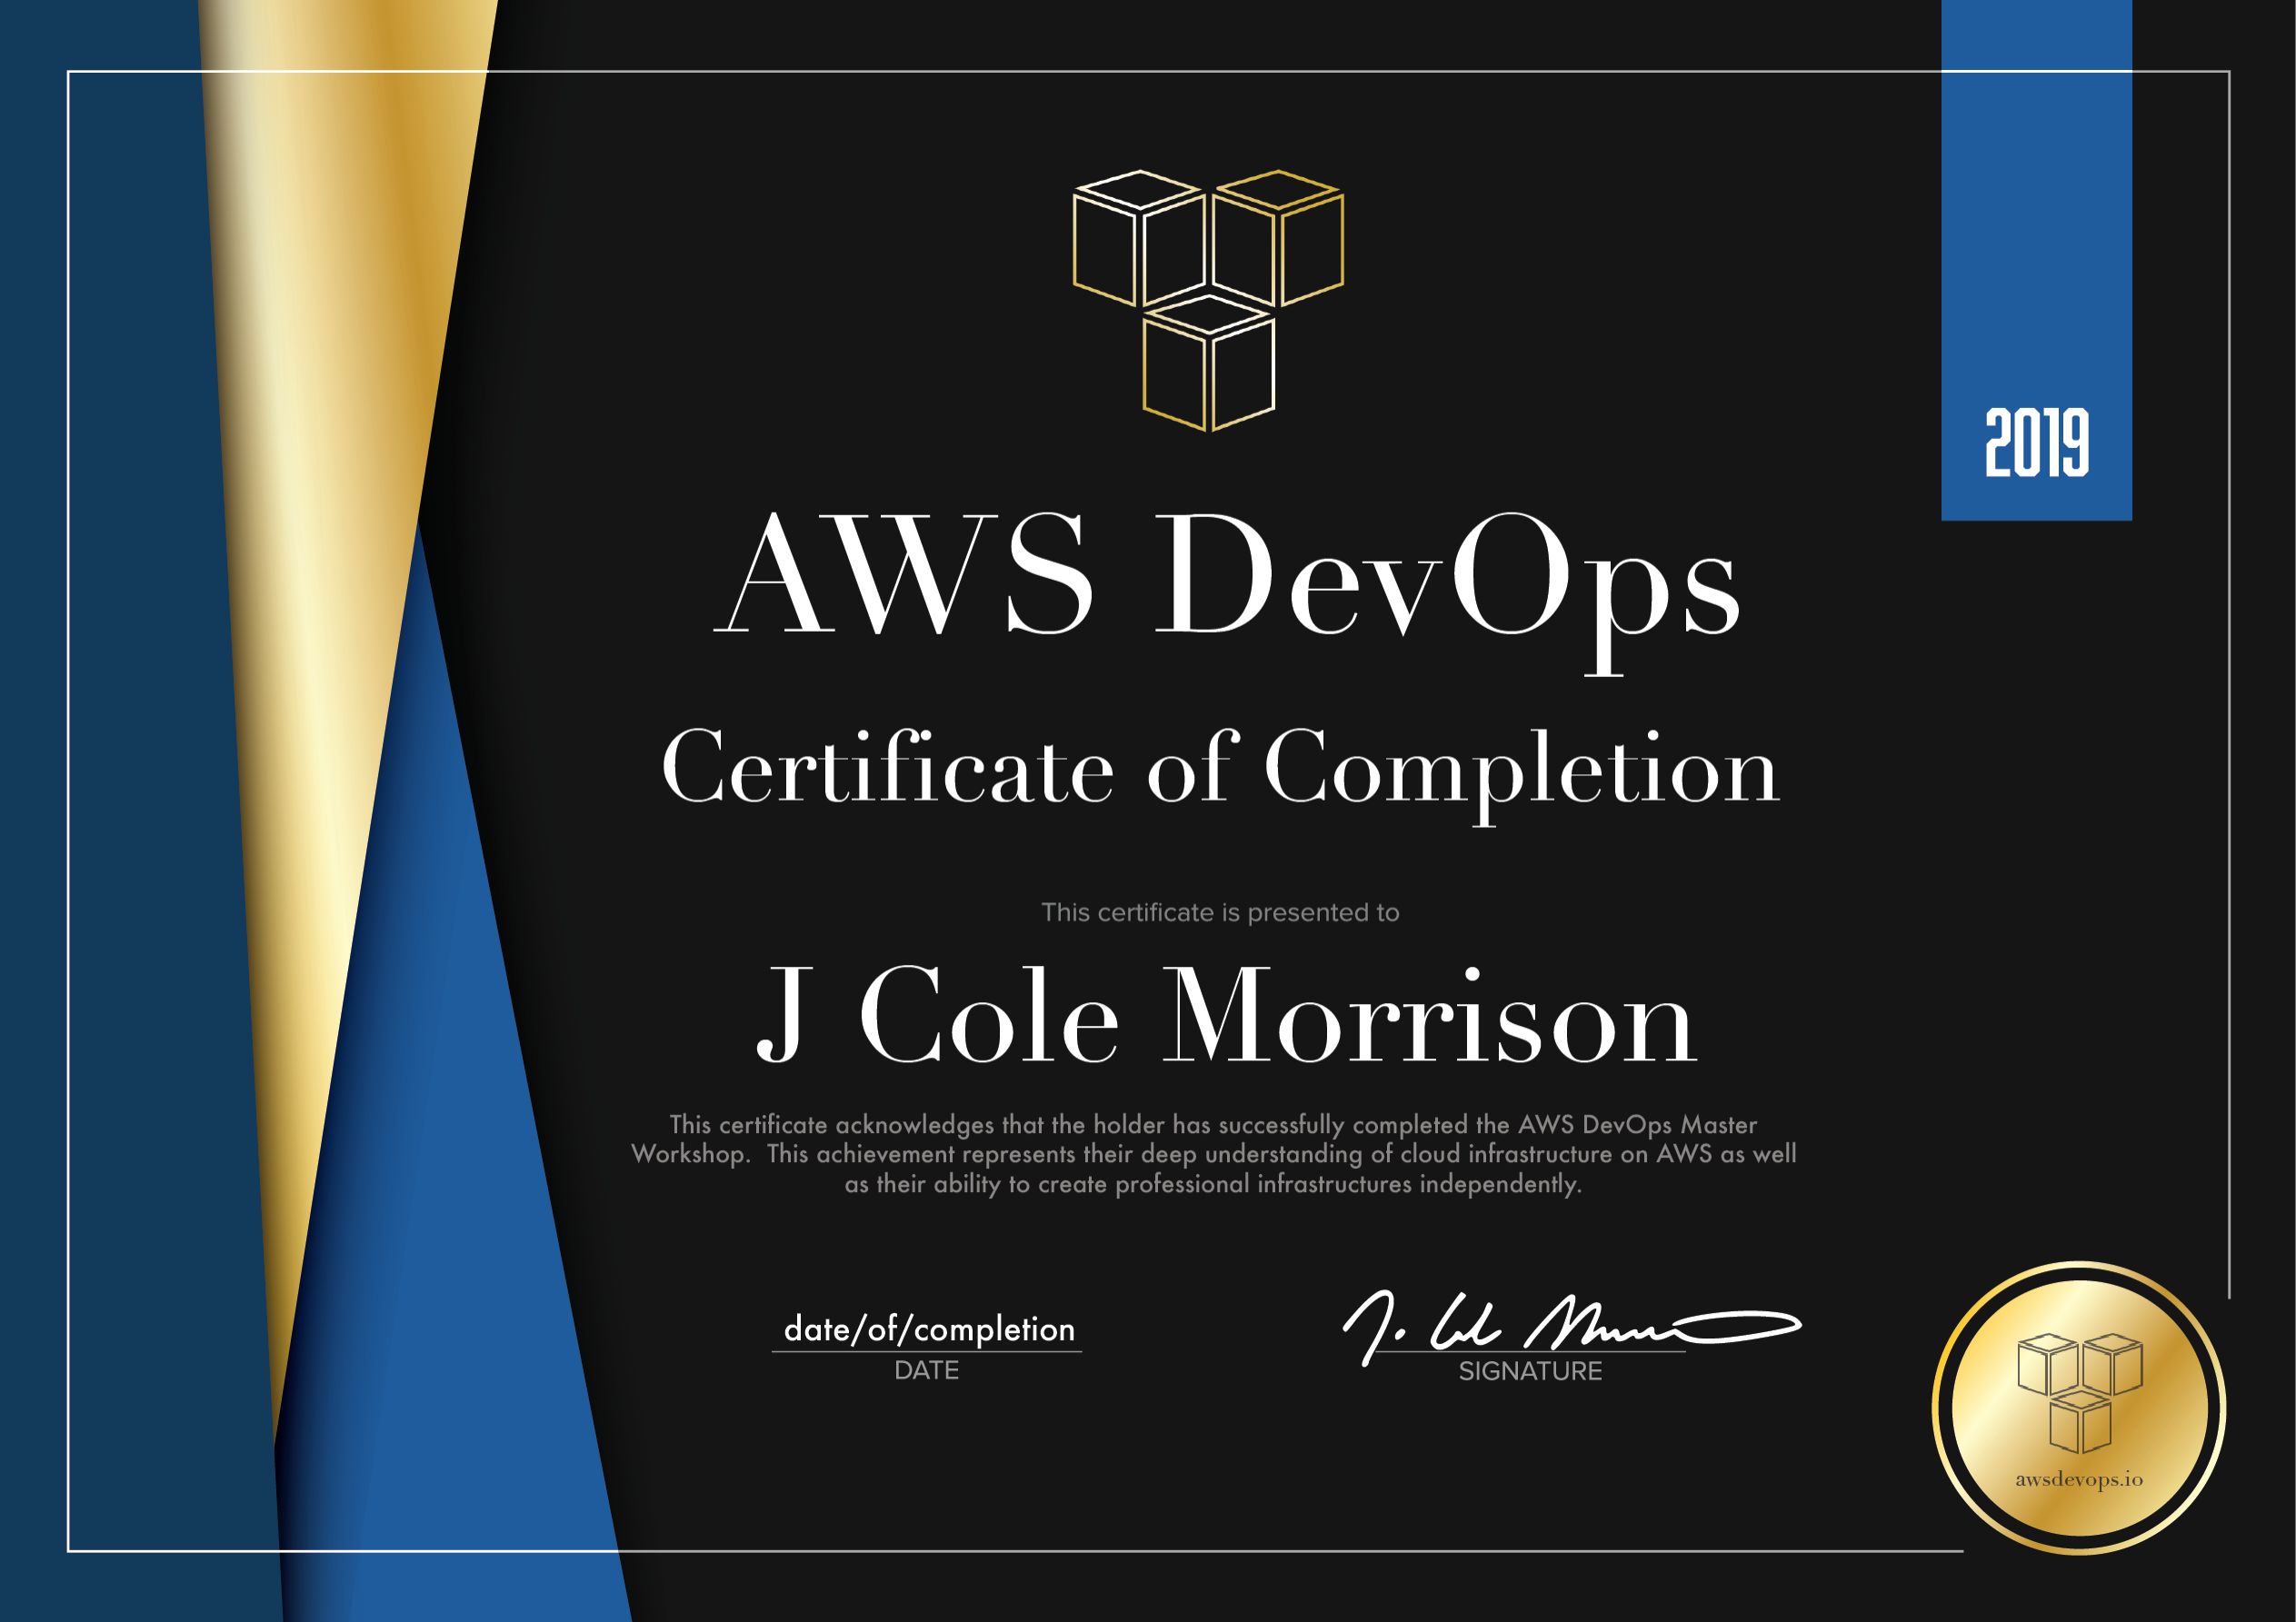 the AwsDevops.io Master Workshop Certificate of Completion